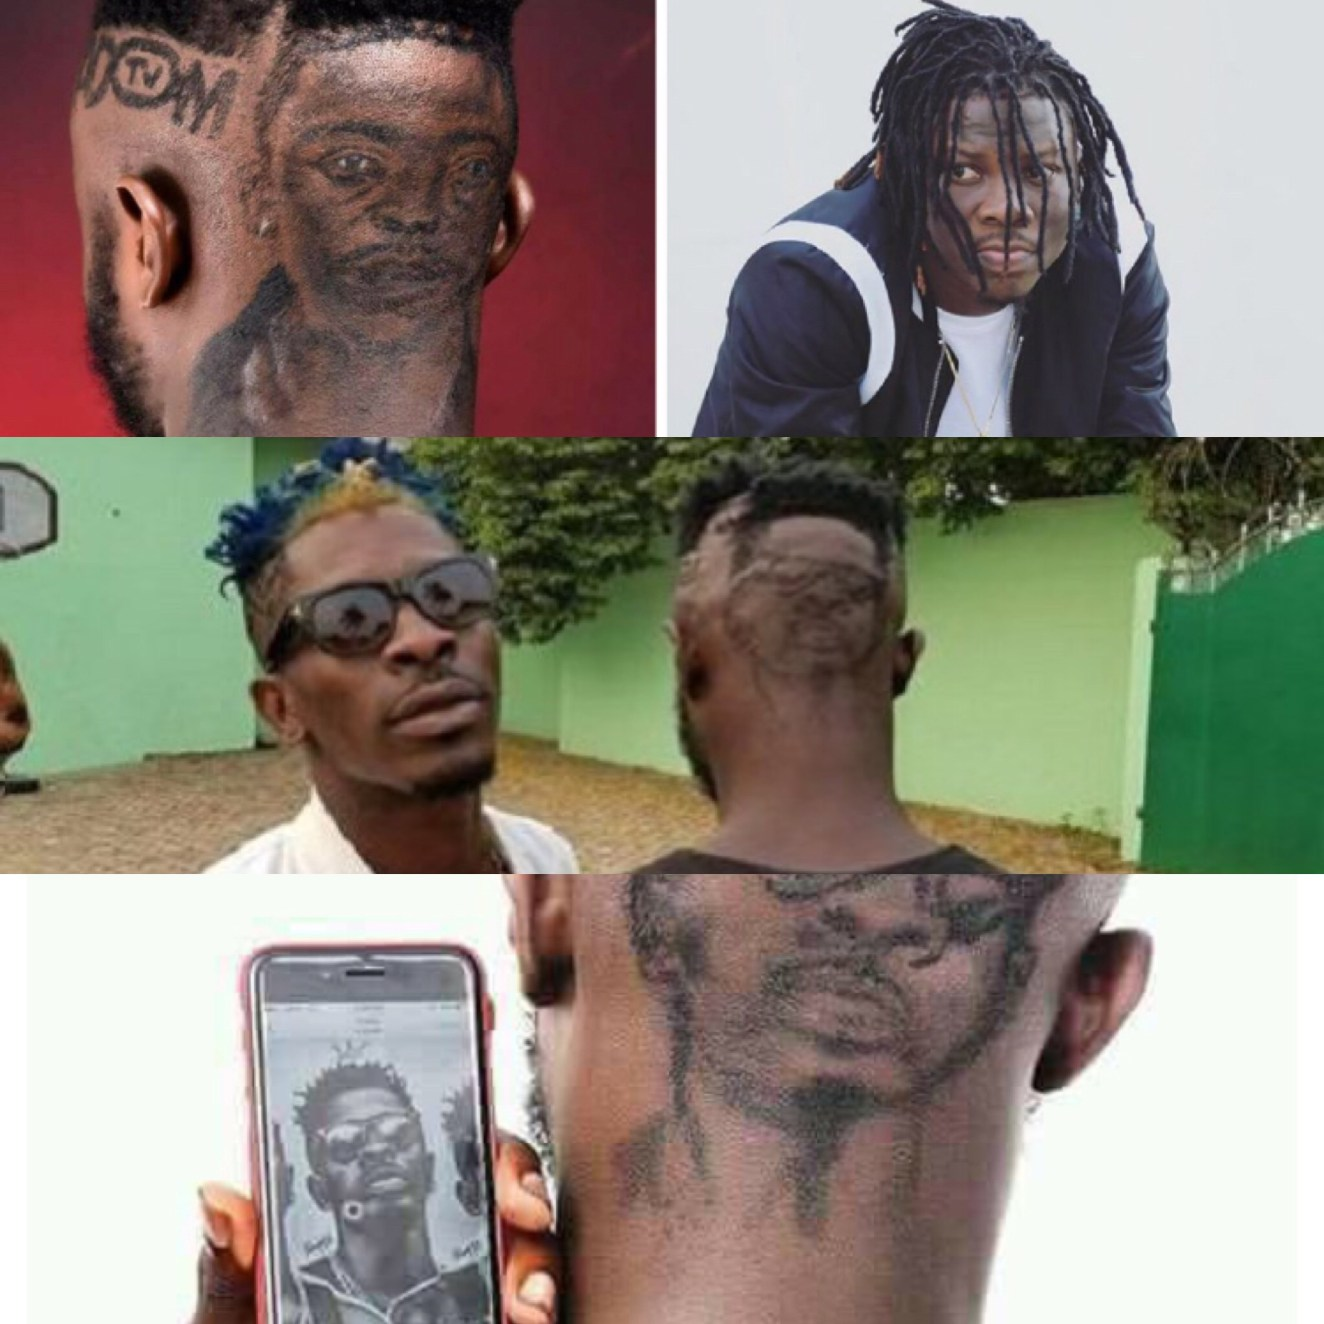 Bhim fan vs sm fan fan of stonebwoy draws the musicians